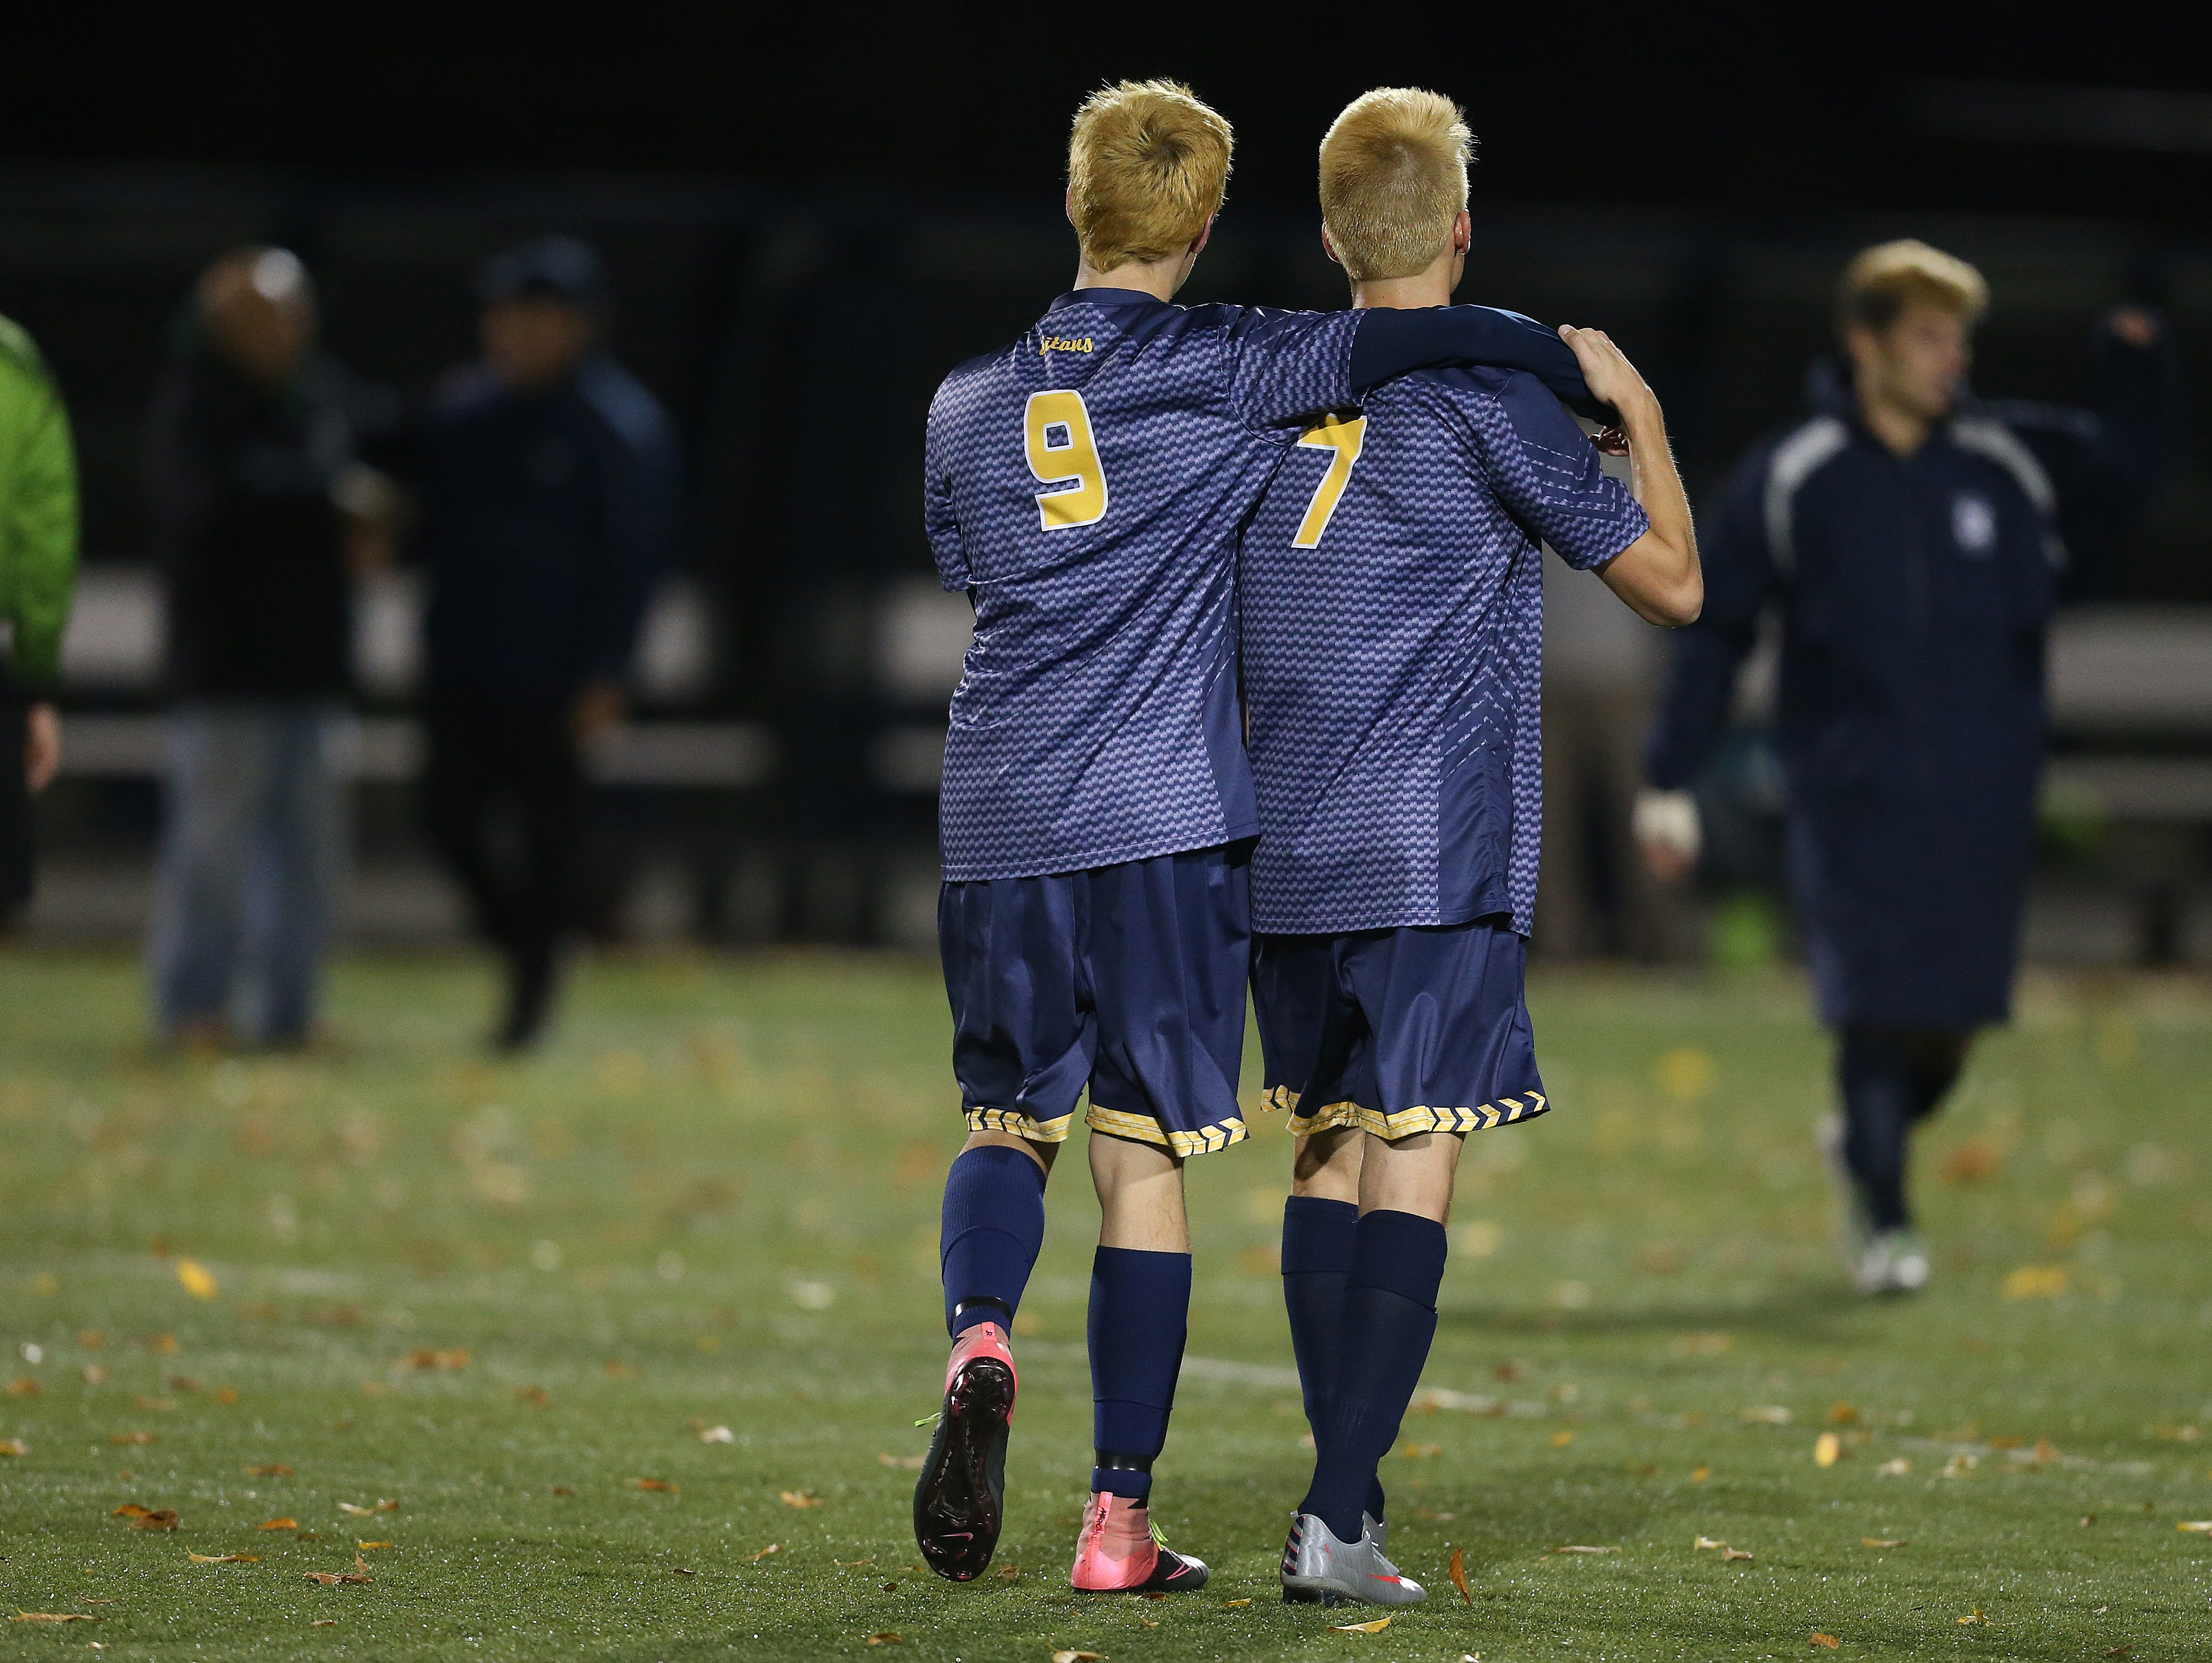 Webster Thomas' Owen Lederman (9) and Ryan Cullen walk off the field after a 2-1 loss to Fairport in the Class AA final.